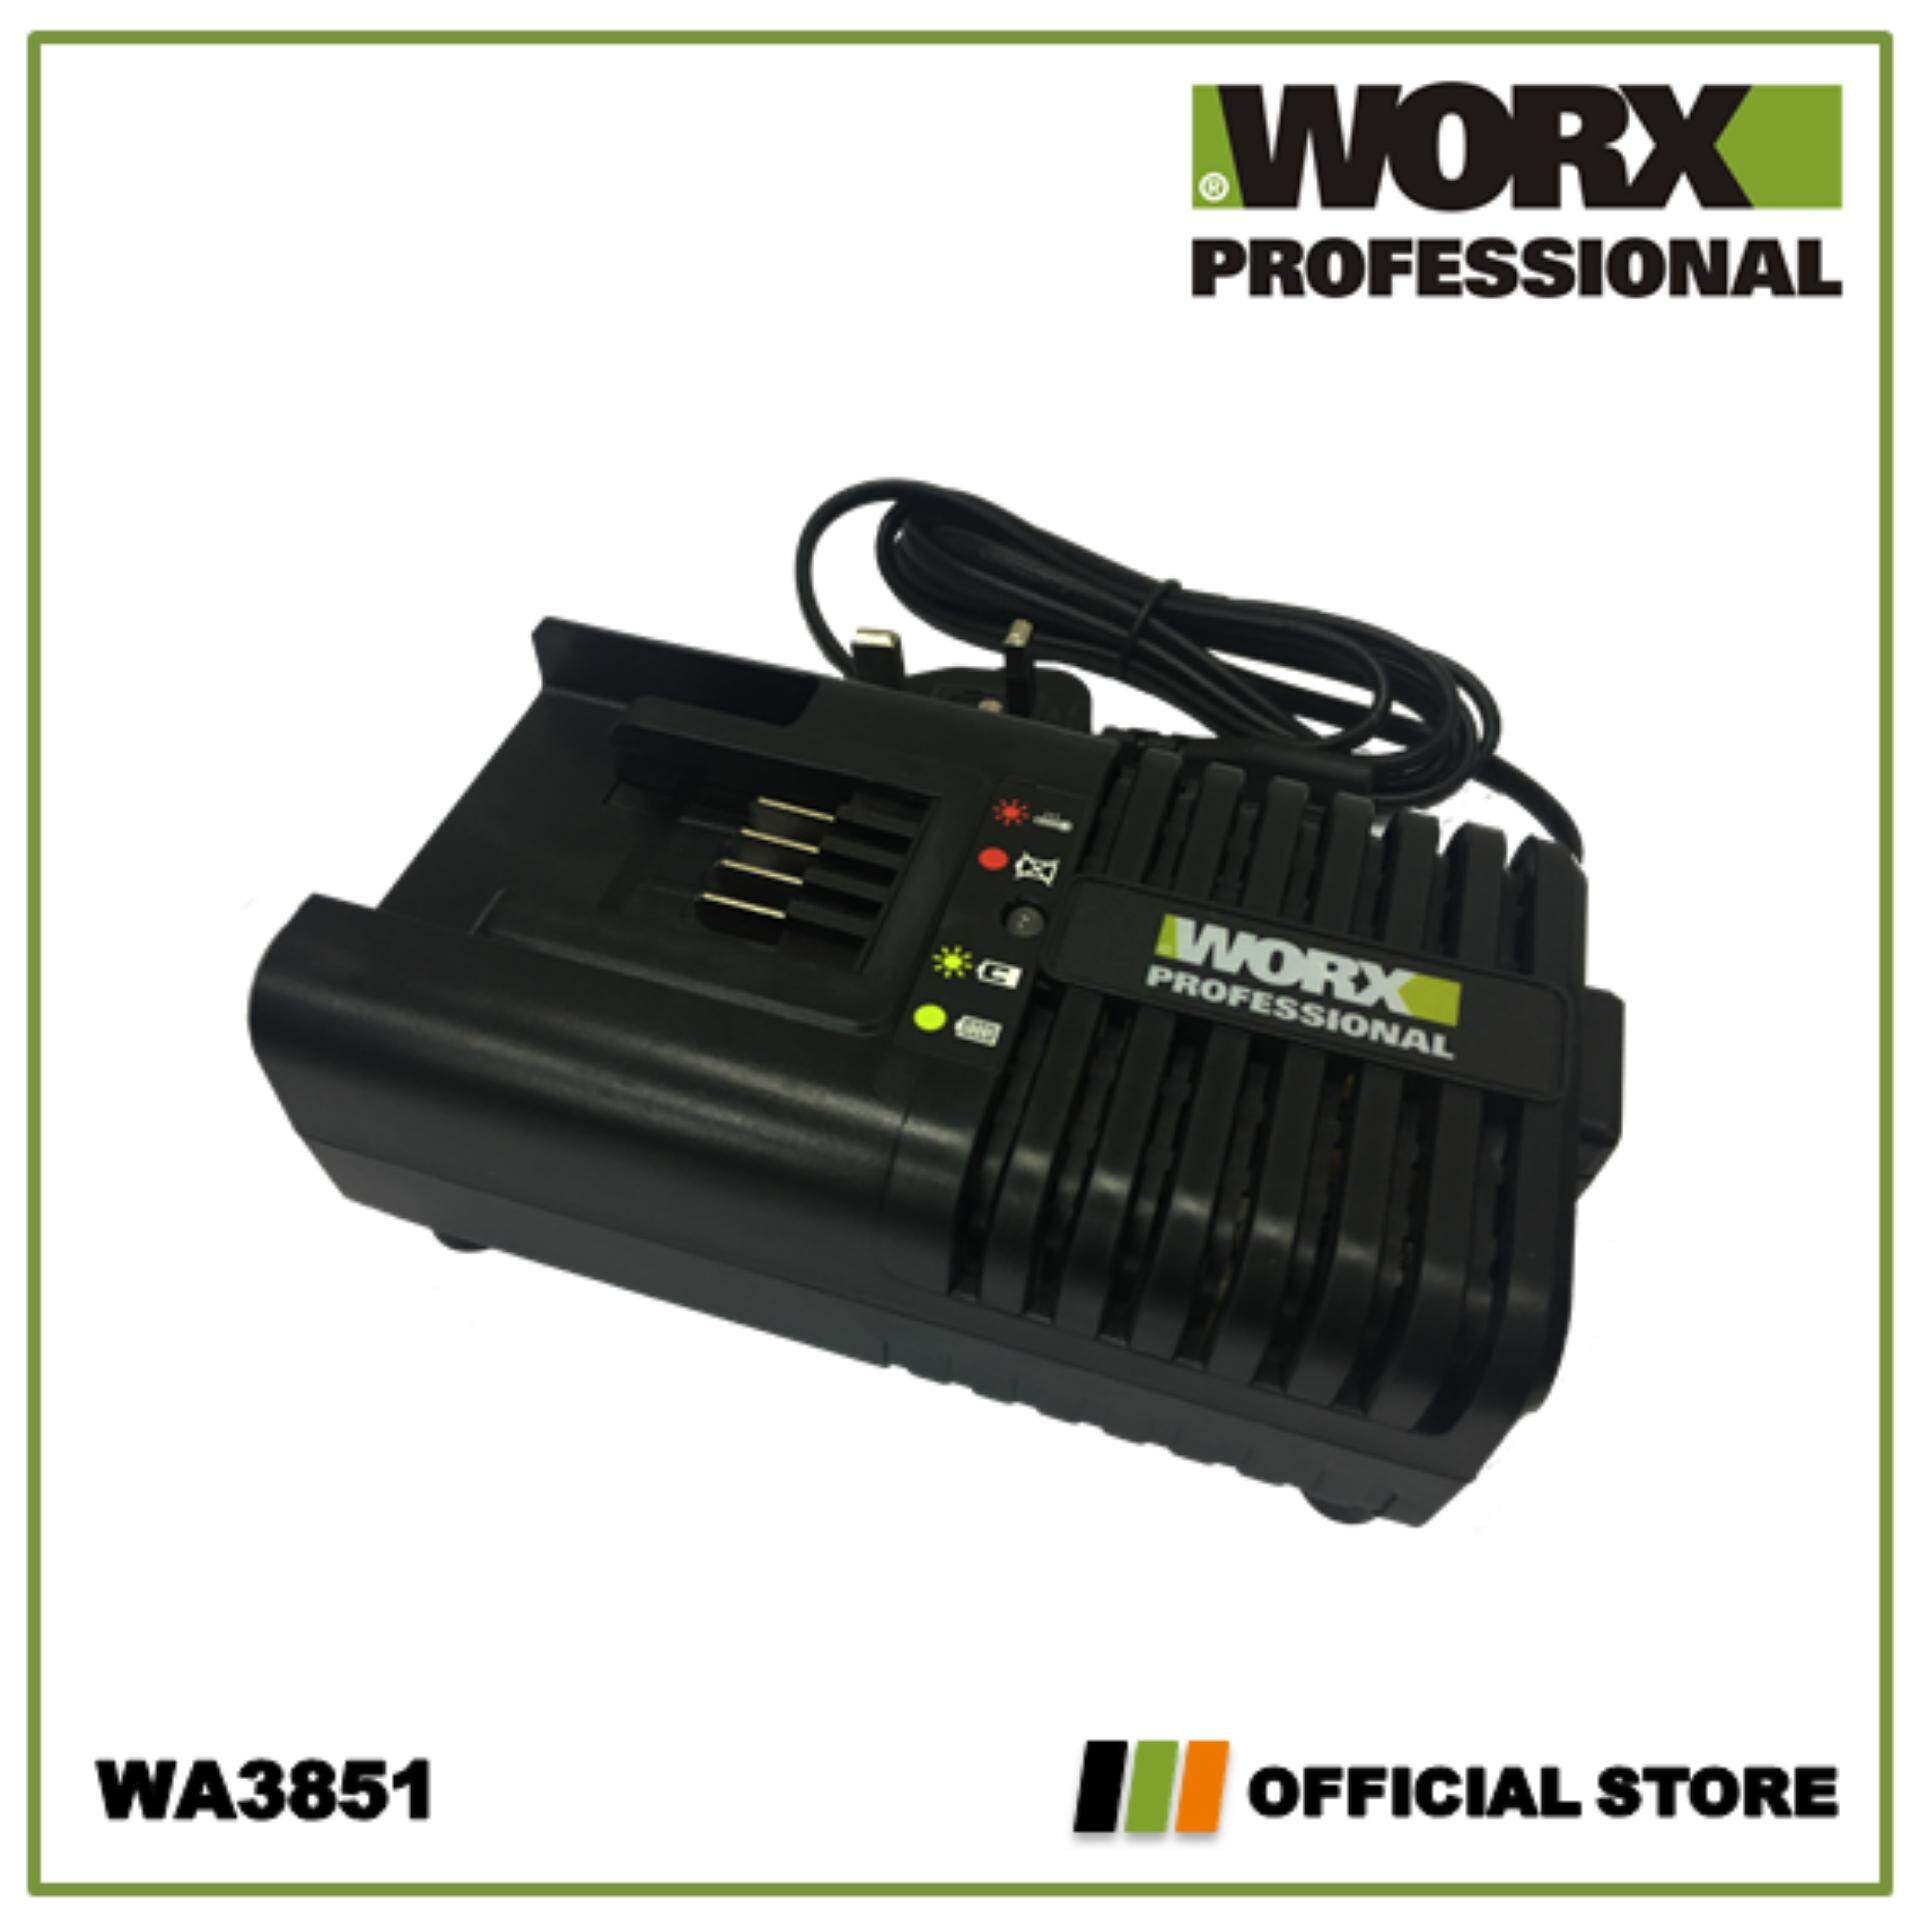 Worx Home Hand Tool Parts & Accessories price in Malaysia - Best